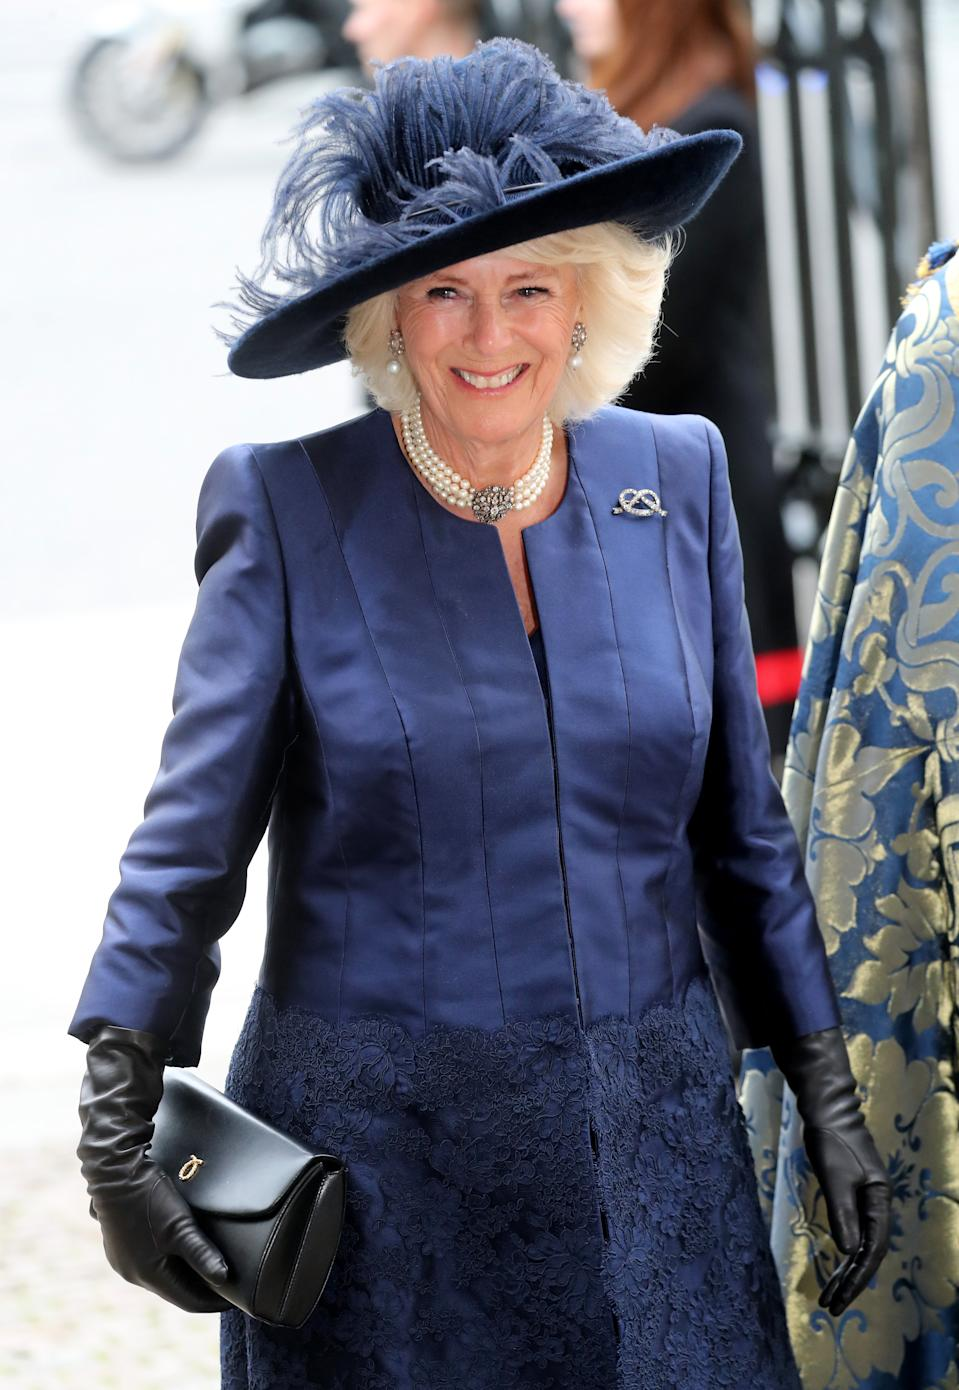 LONDON, ENGLAND - MARCH 09: Camilla, Duchess of Cornwall attends the Commonwealth Day Service 2020 at Westminster Abbey on March 09, 2020 in London, England. The Commonwealth represents 2.4 billion people and 54 countries, working in collaboration towards shared economic, environmental, social and democratic goals. (Photo by Chris Jackson/Getty Images)